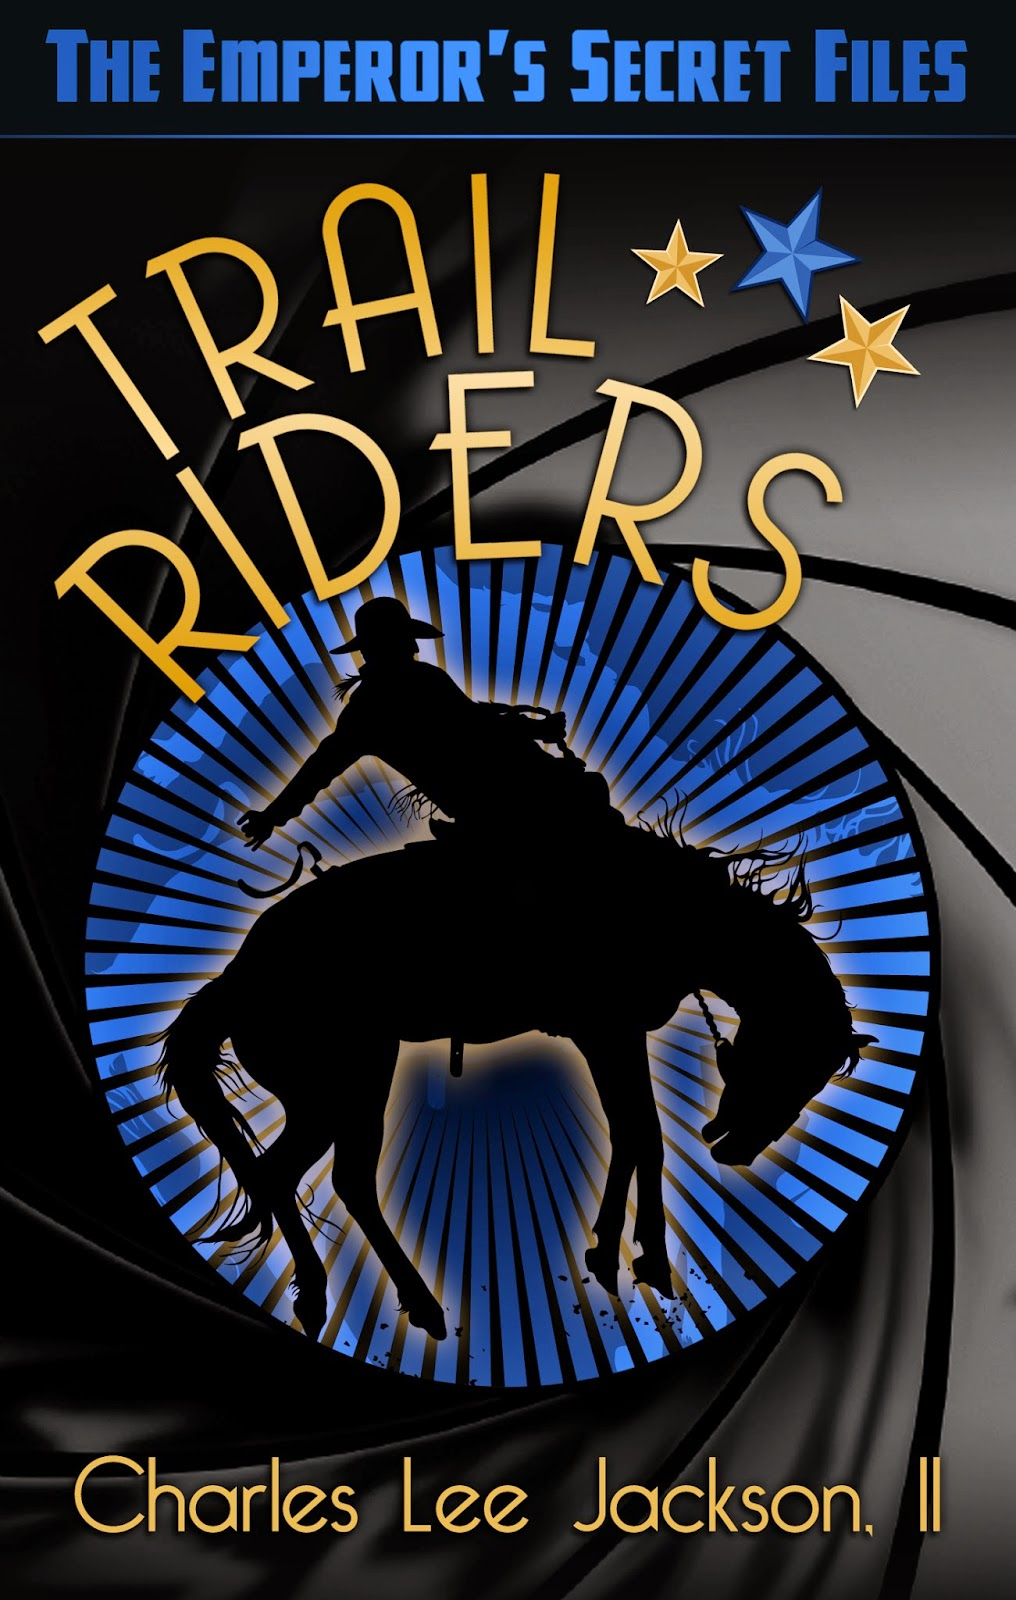 http://www.amazon.com/TRAIL-RIDERS-EMPERORS-SECRET-FILES-ebook/dp/B00J49ZEAY/